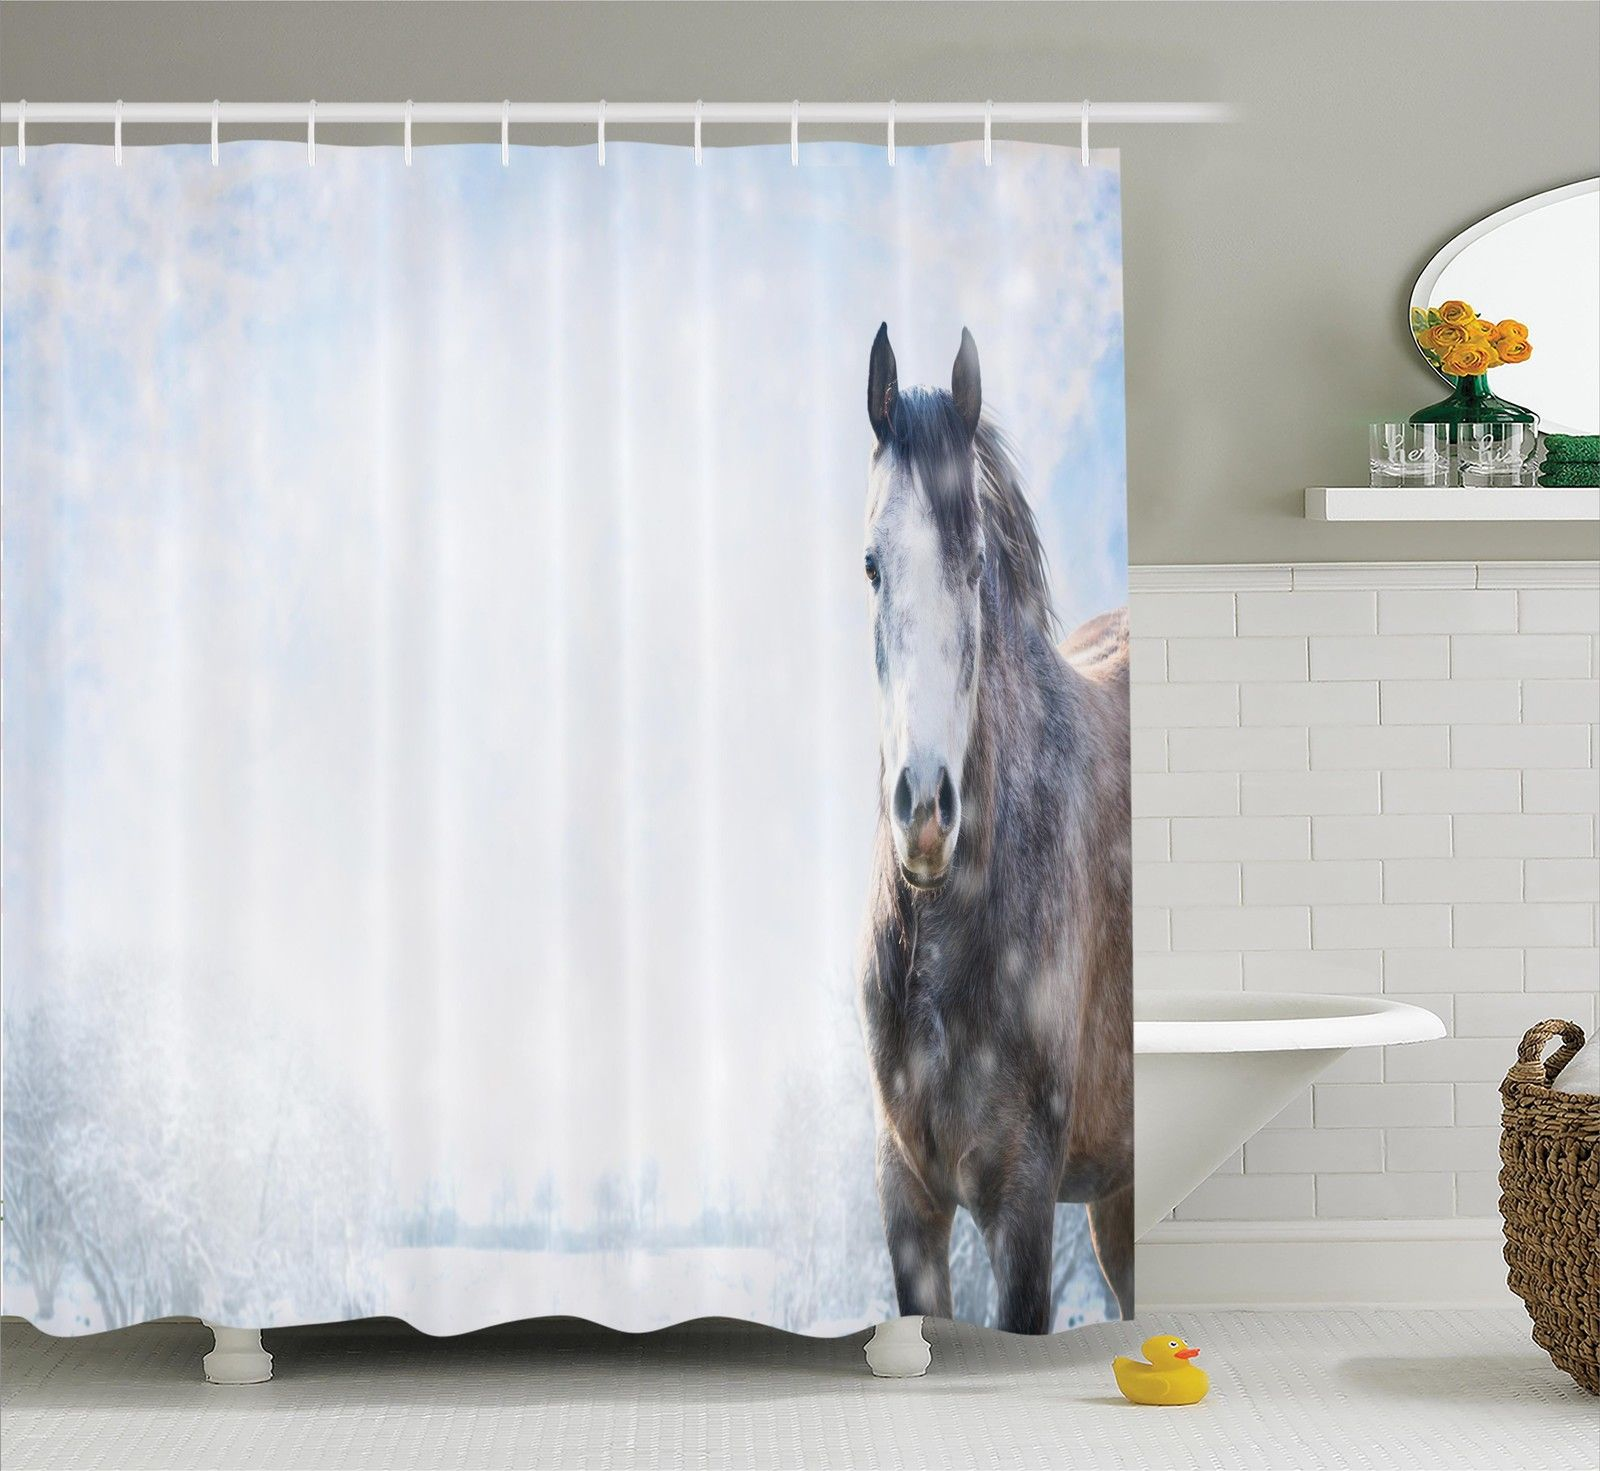 Farm House Decor Shower Curtain Set, Gray Horse On Winter Landscape With Snowfall In Wilderness Royal Animal In Nature, Bathroom Accessories, 69W X 70L Inches, By Ambesonne